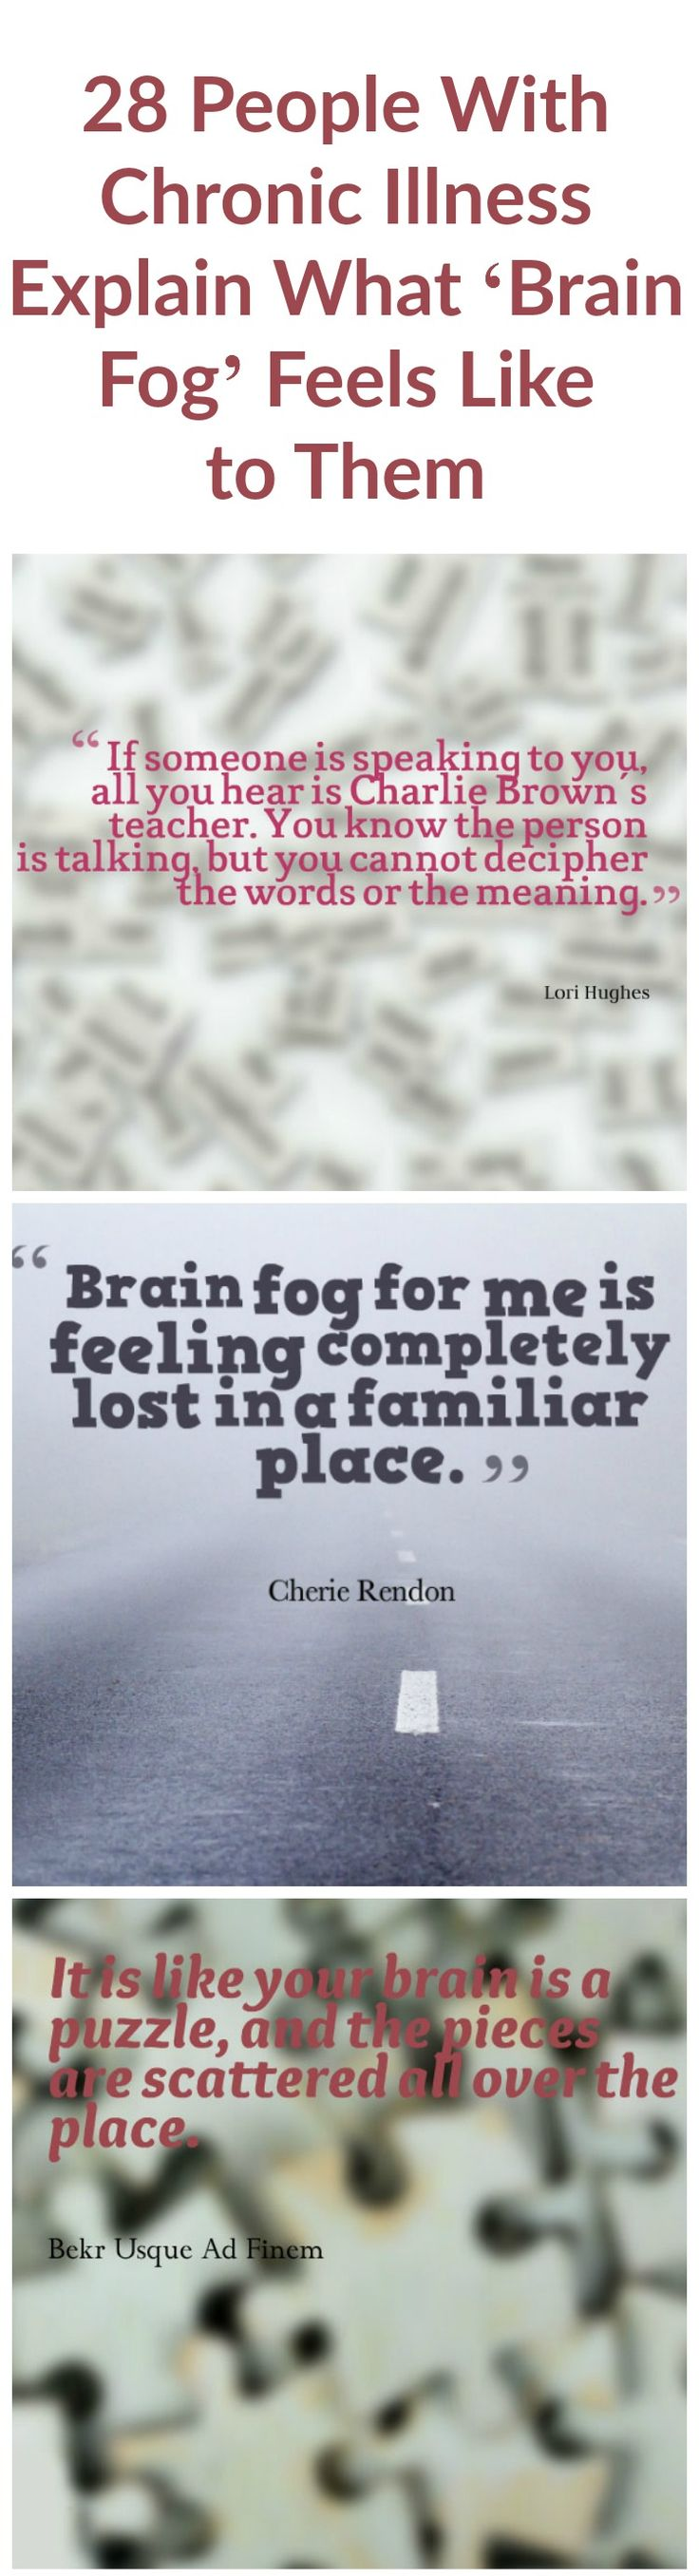 28 People With Chronic Illness Explain What 'Brain Fog' Feels Like to Them